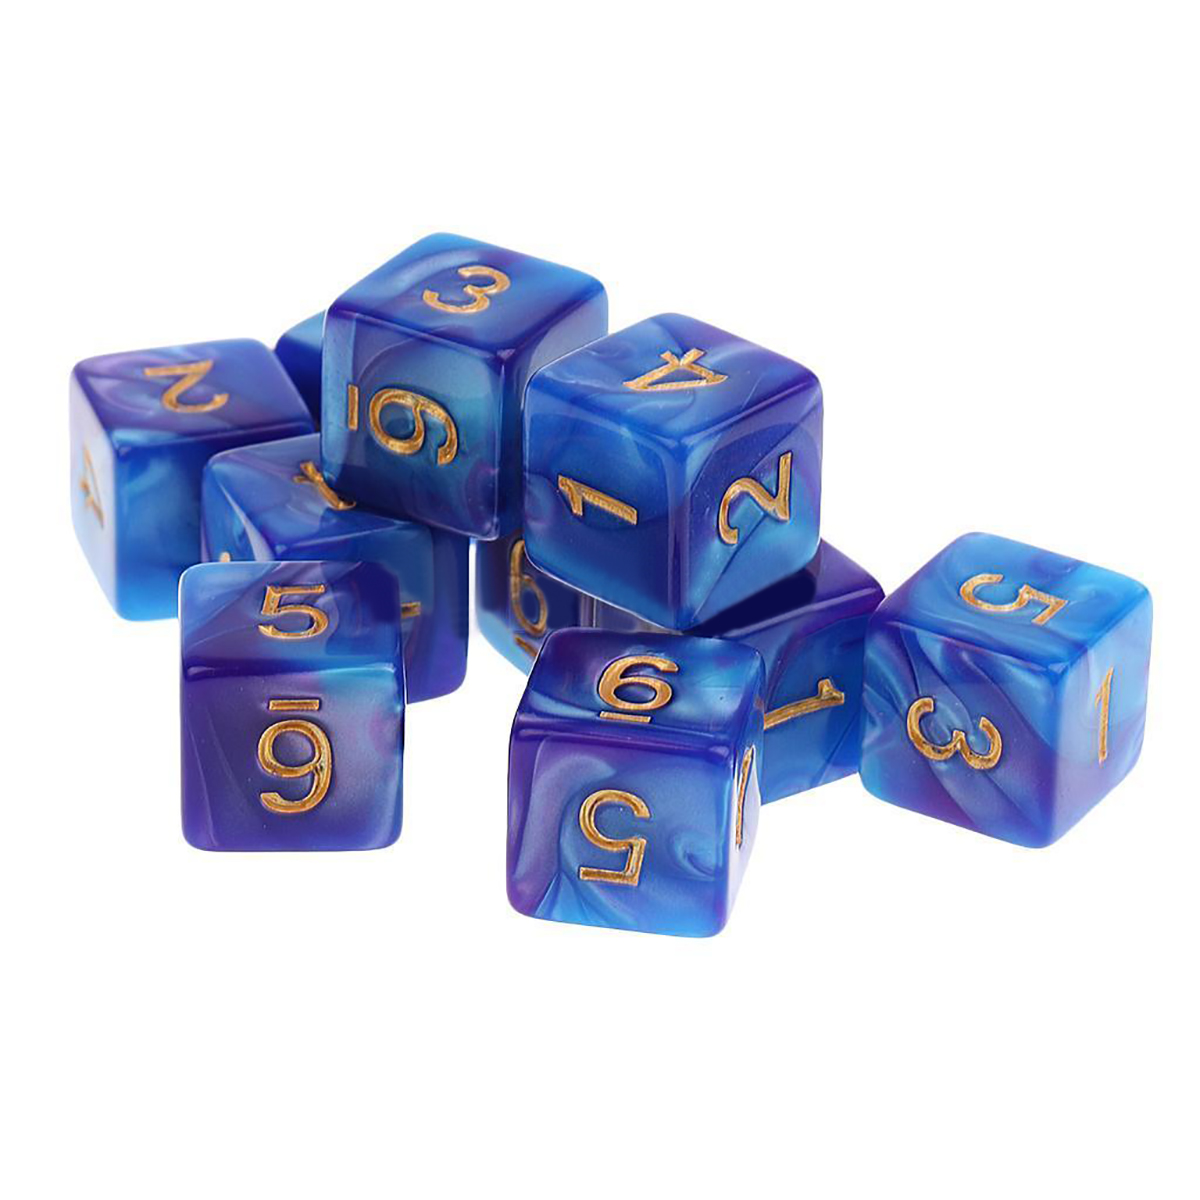 New Arrival 10pcs/set D6 Sided Dice Set Polyhedral Dice For Dungeons Dragons Dice Game Gray/Black/Green/Blue/Red/Coffee/Purple